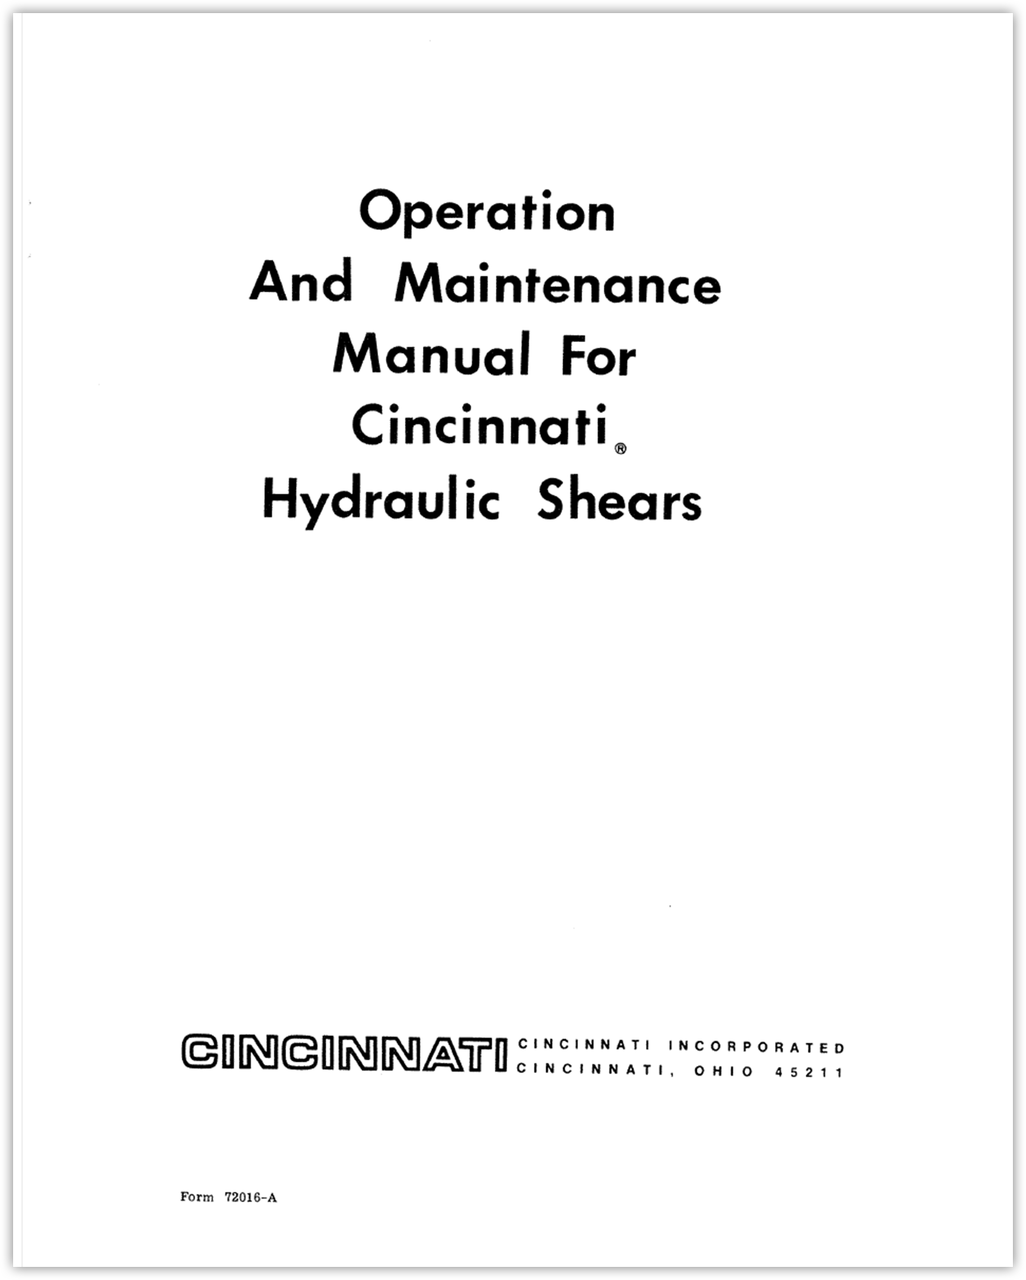 72016-A Operation and Maintenance Manual for CINCINNATI Hydraulic Shears